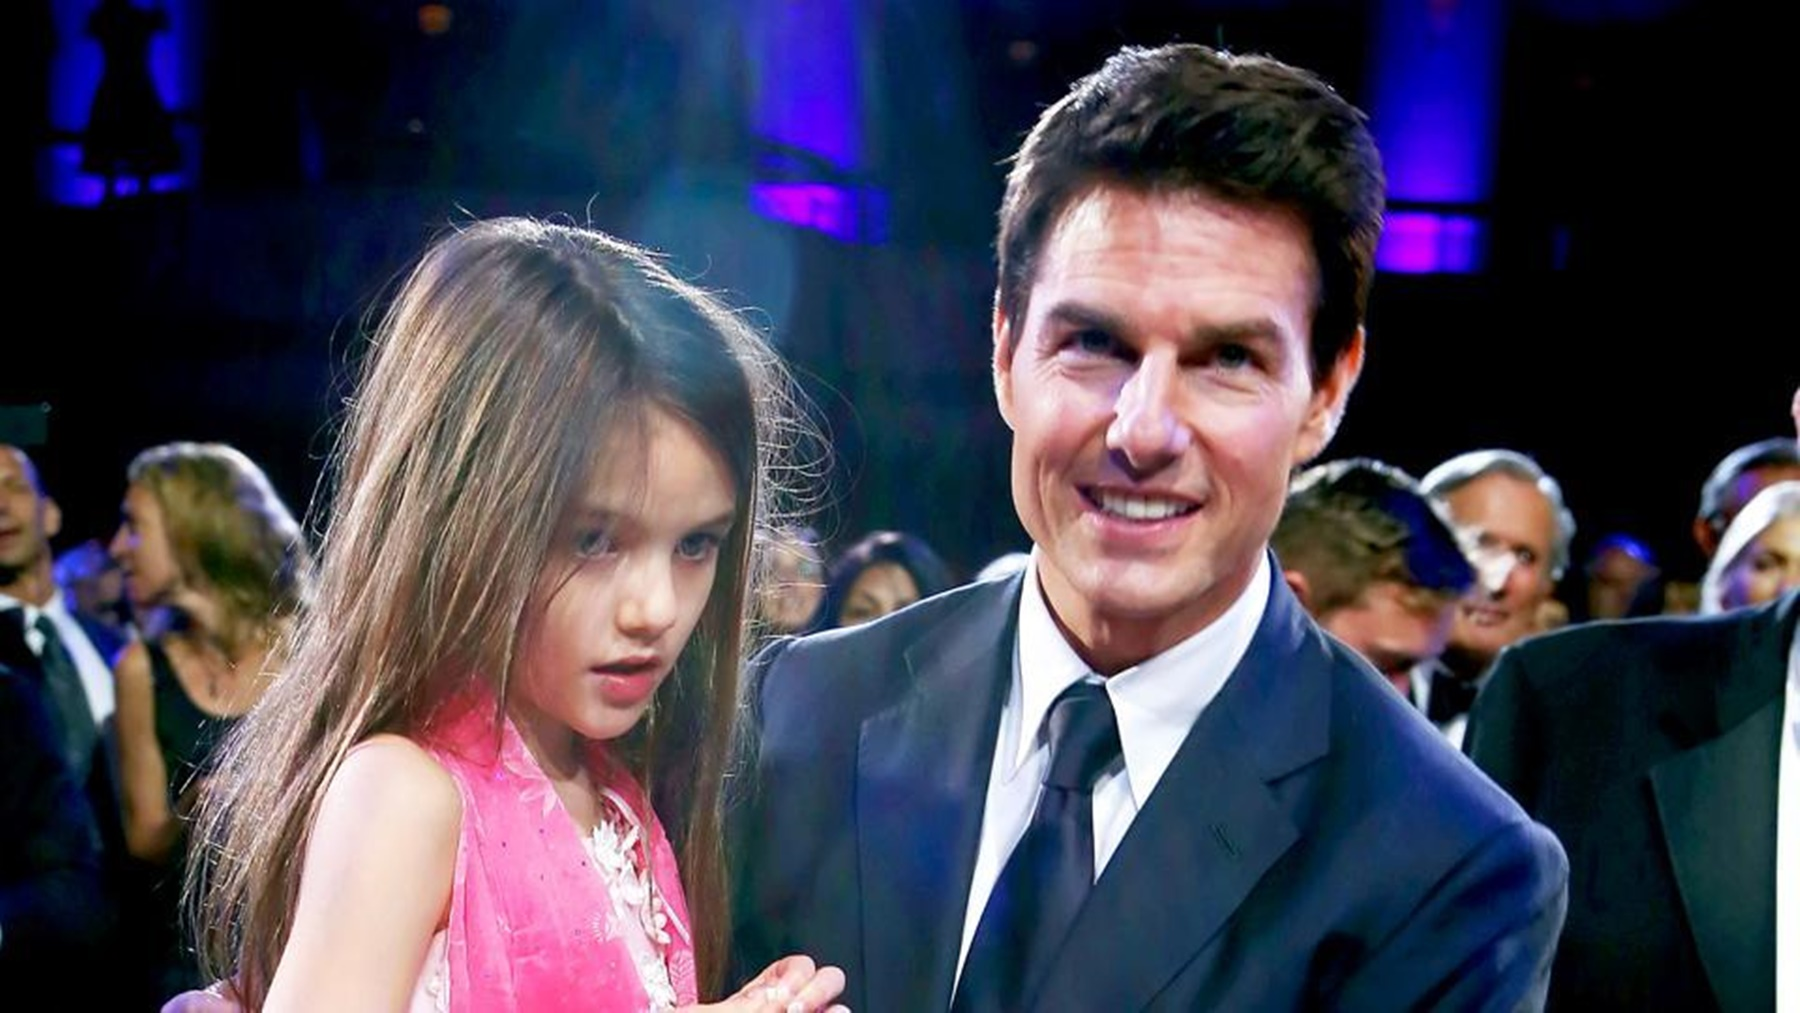 tom-cruise-will-not-attend-suris-13th-birthday-celebration-a-scientology-expert-explains-why-he-cannot-get-close-to-katie-holmes-daughter